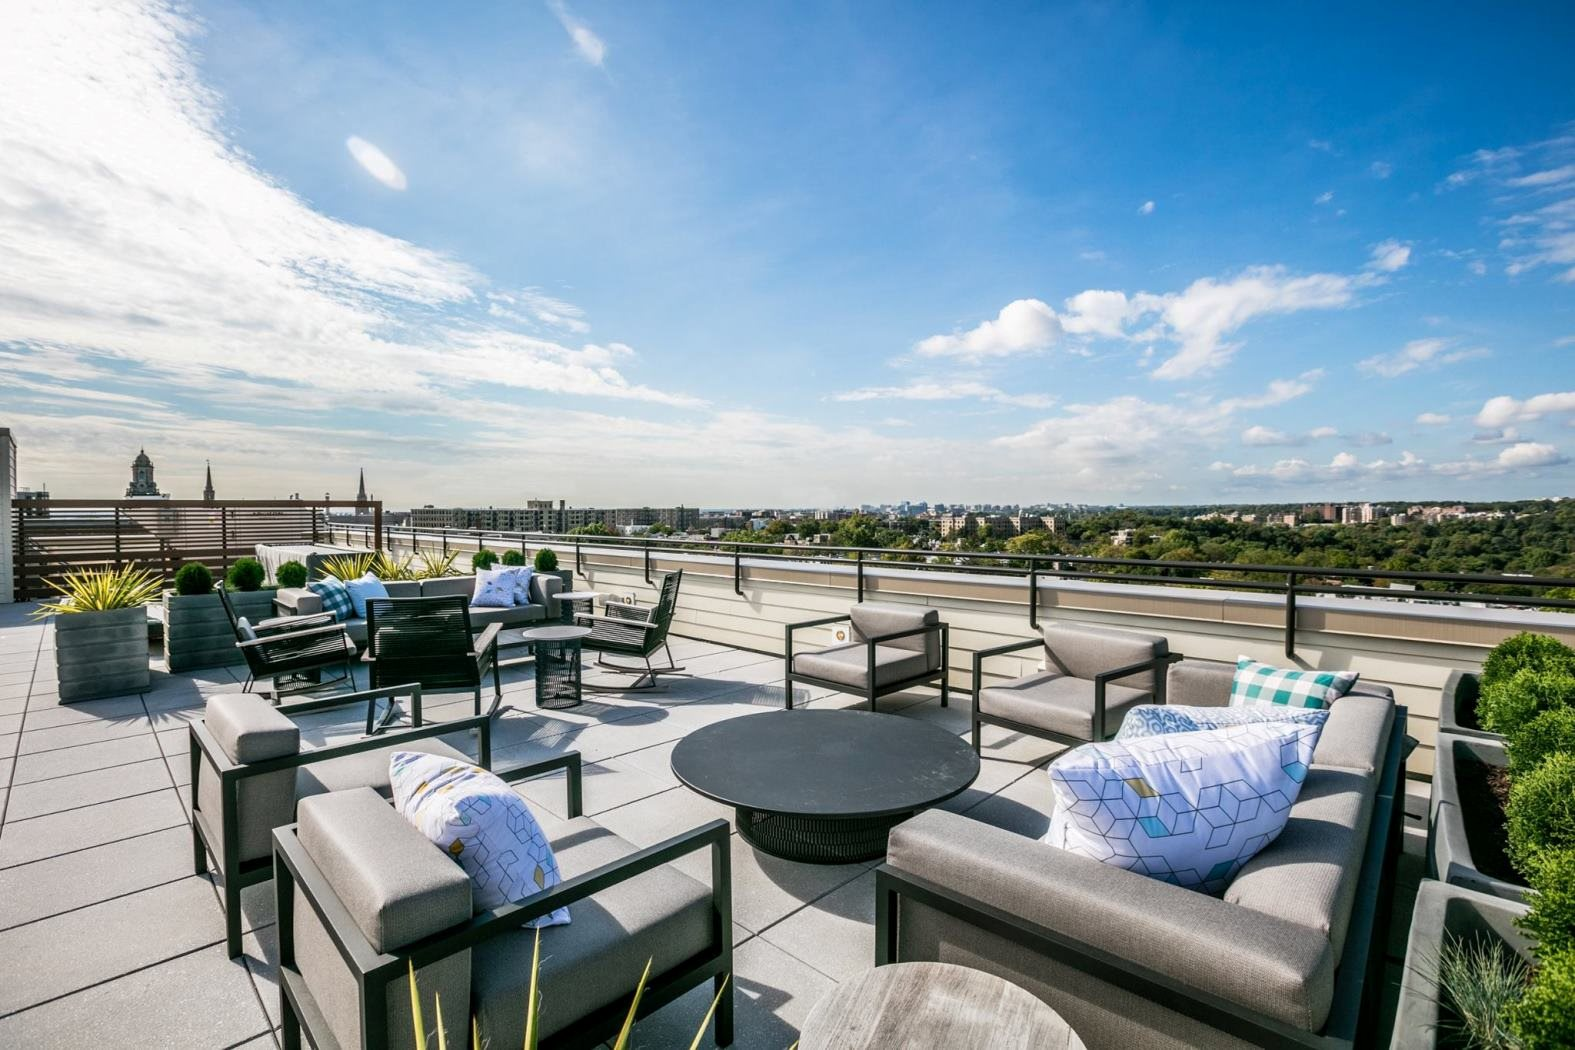 Gorgeous cityscape view of our roof deck in our Vintage complex in Washington, DC